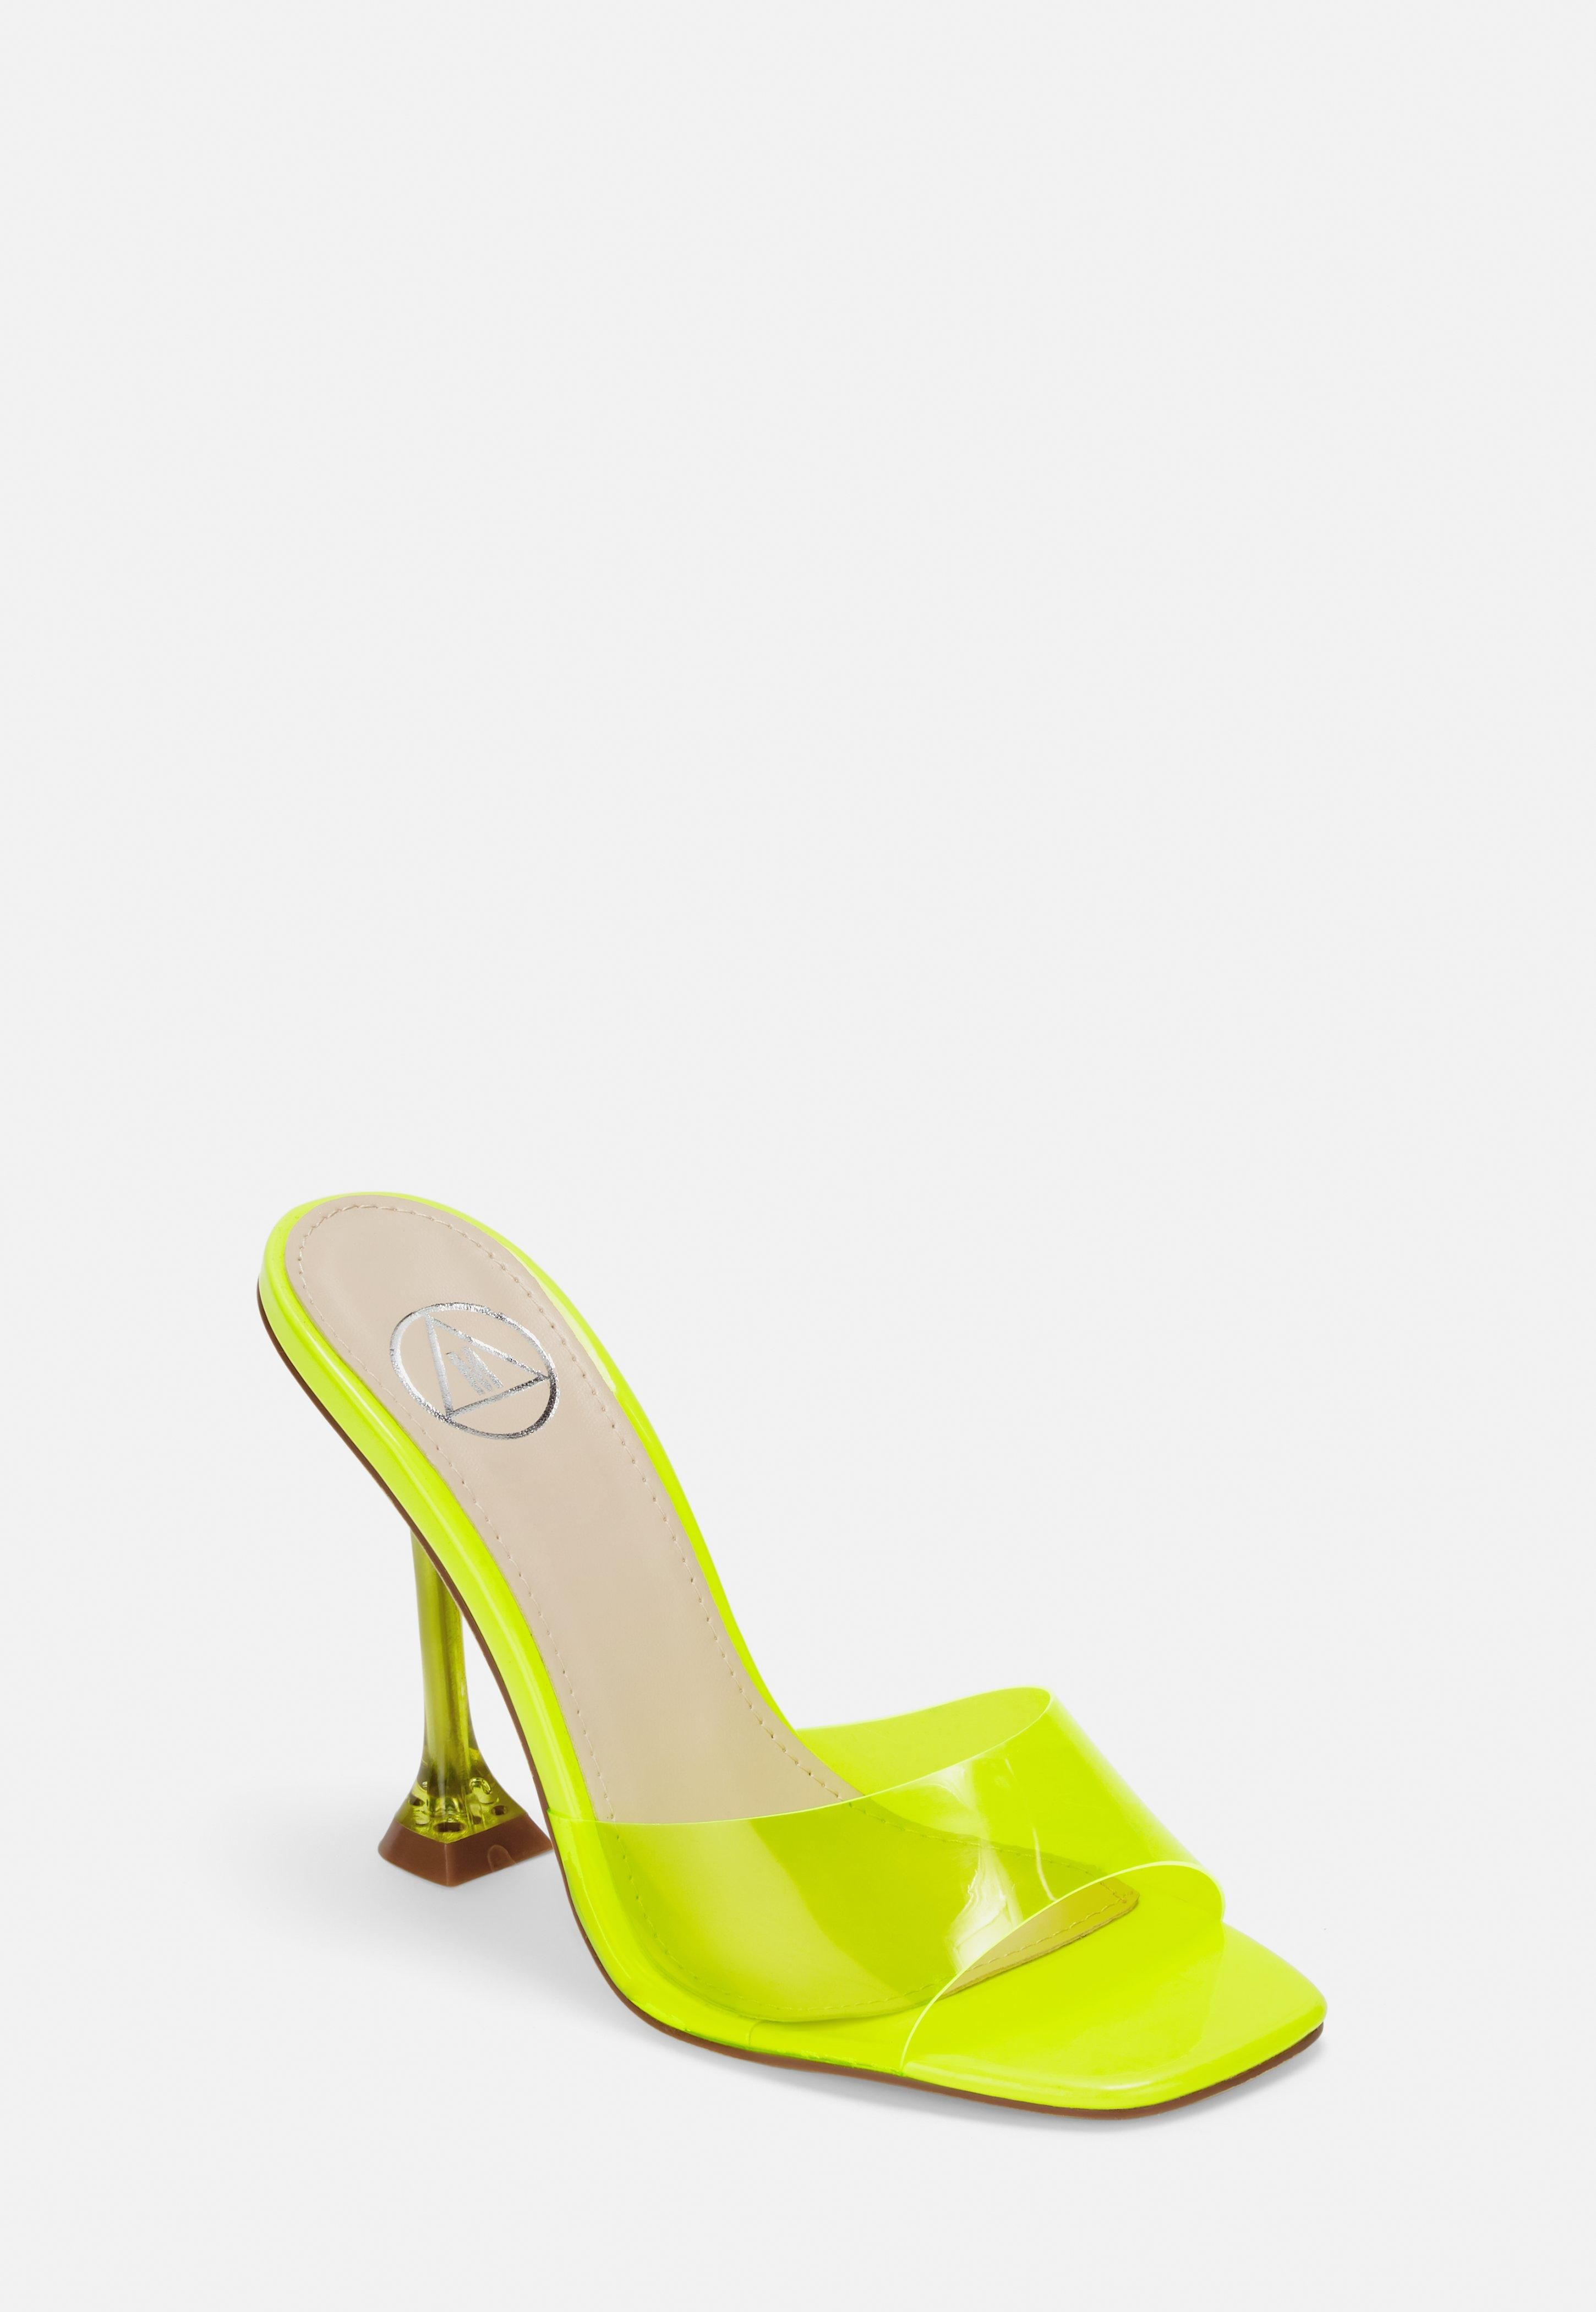 Neon Yellow Clear Feature Heel Mules | Heels, Heeled mules